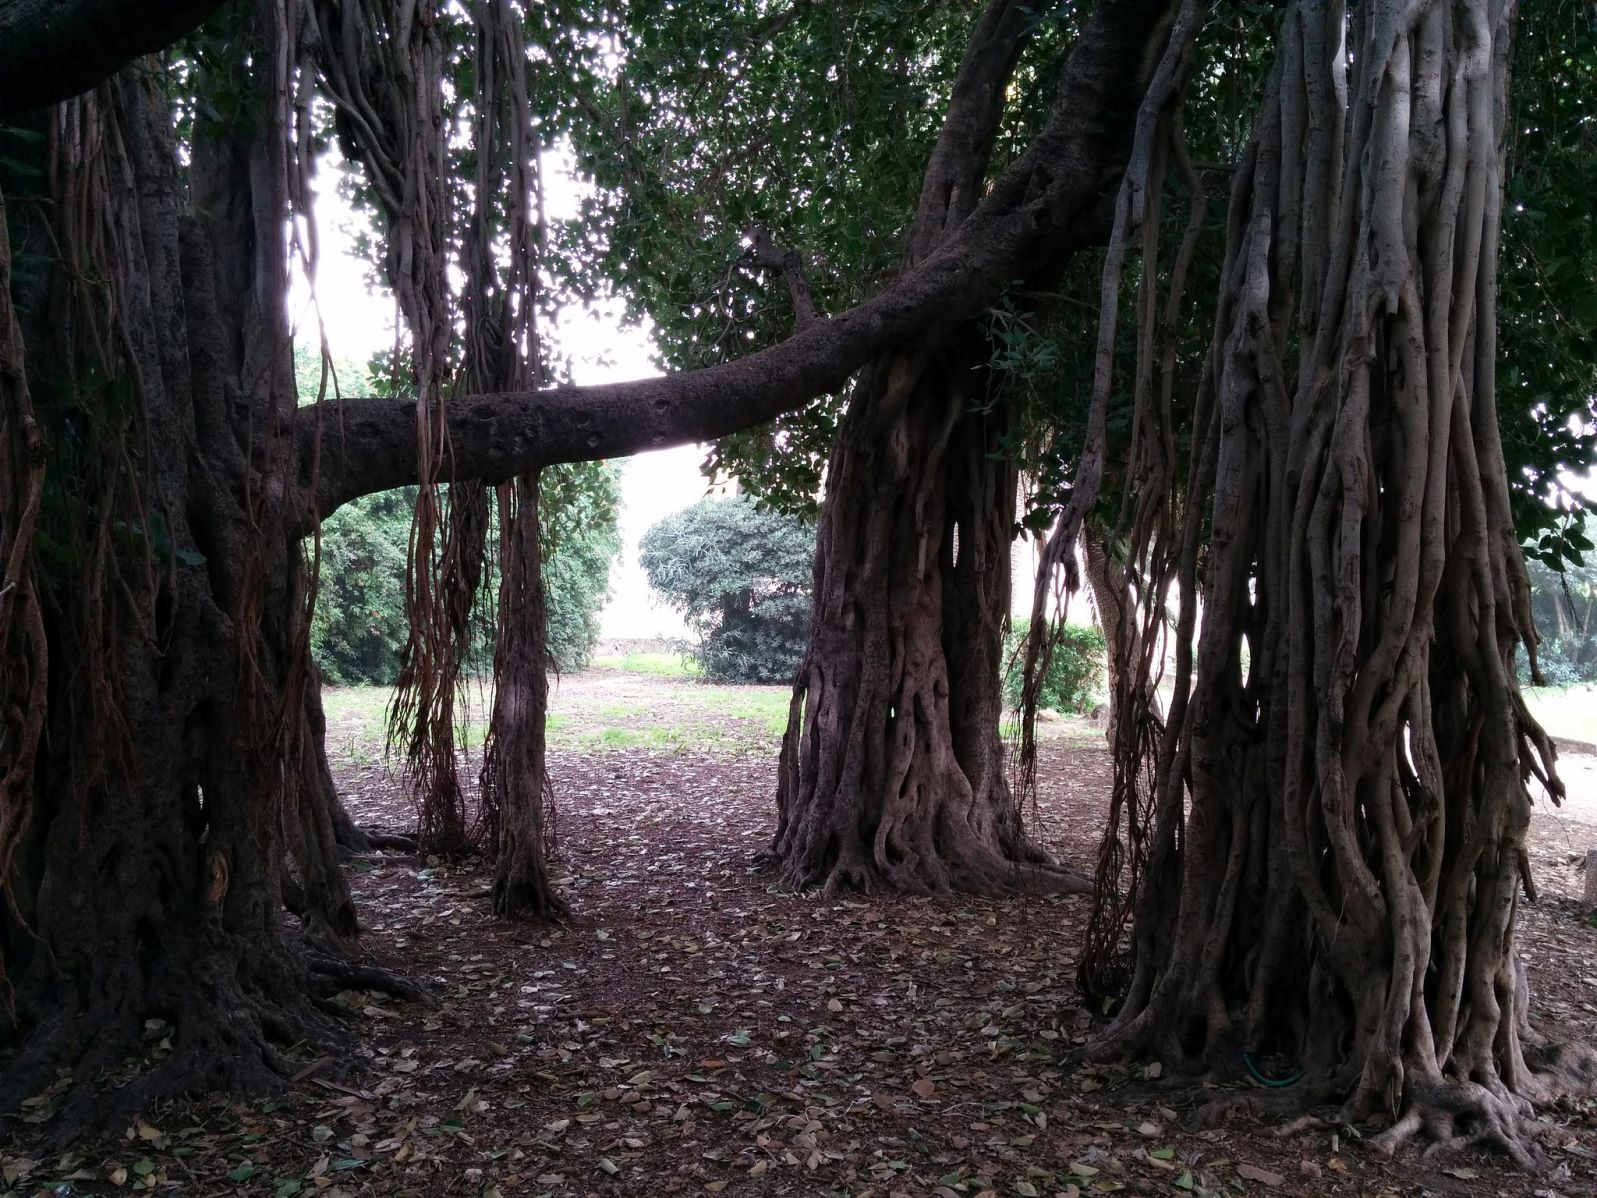 The Bengali ficus tree at Mikveh Israel Agricultural School in Tel Aviv. Photo by Viva Sarah Press